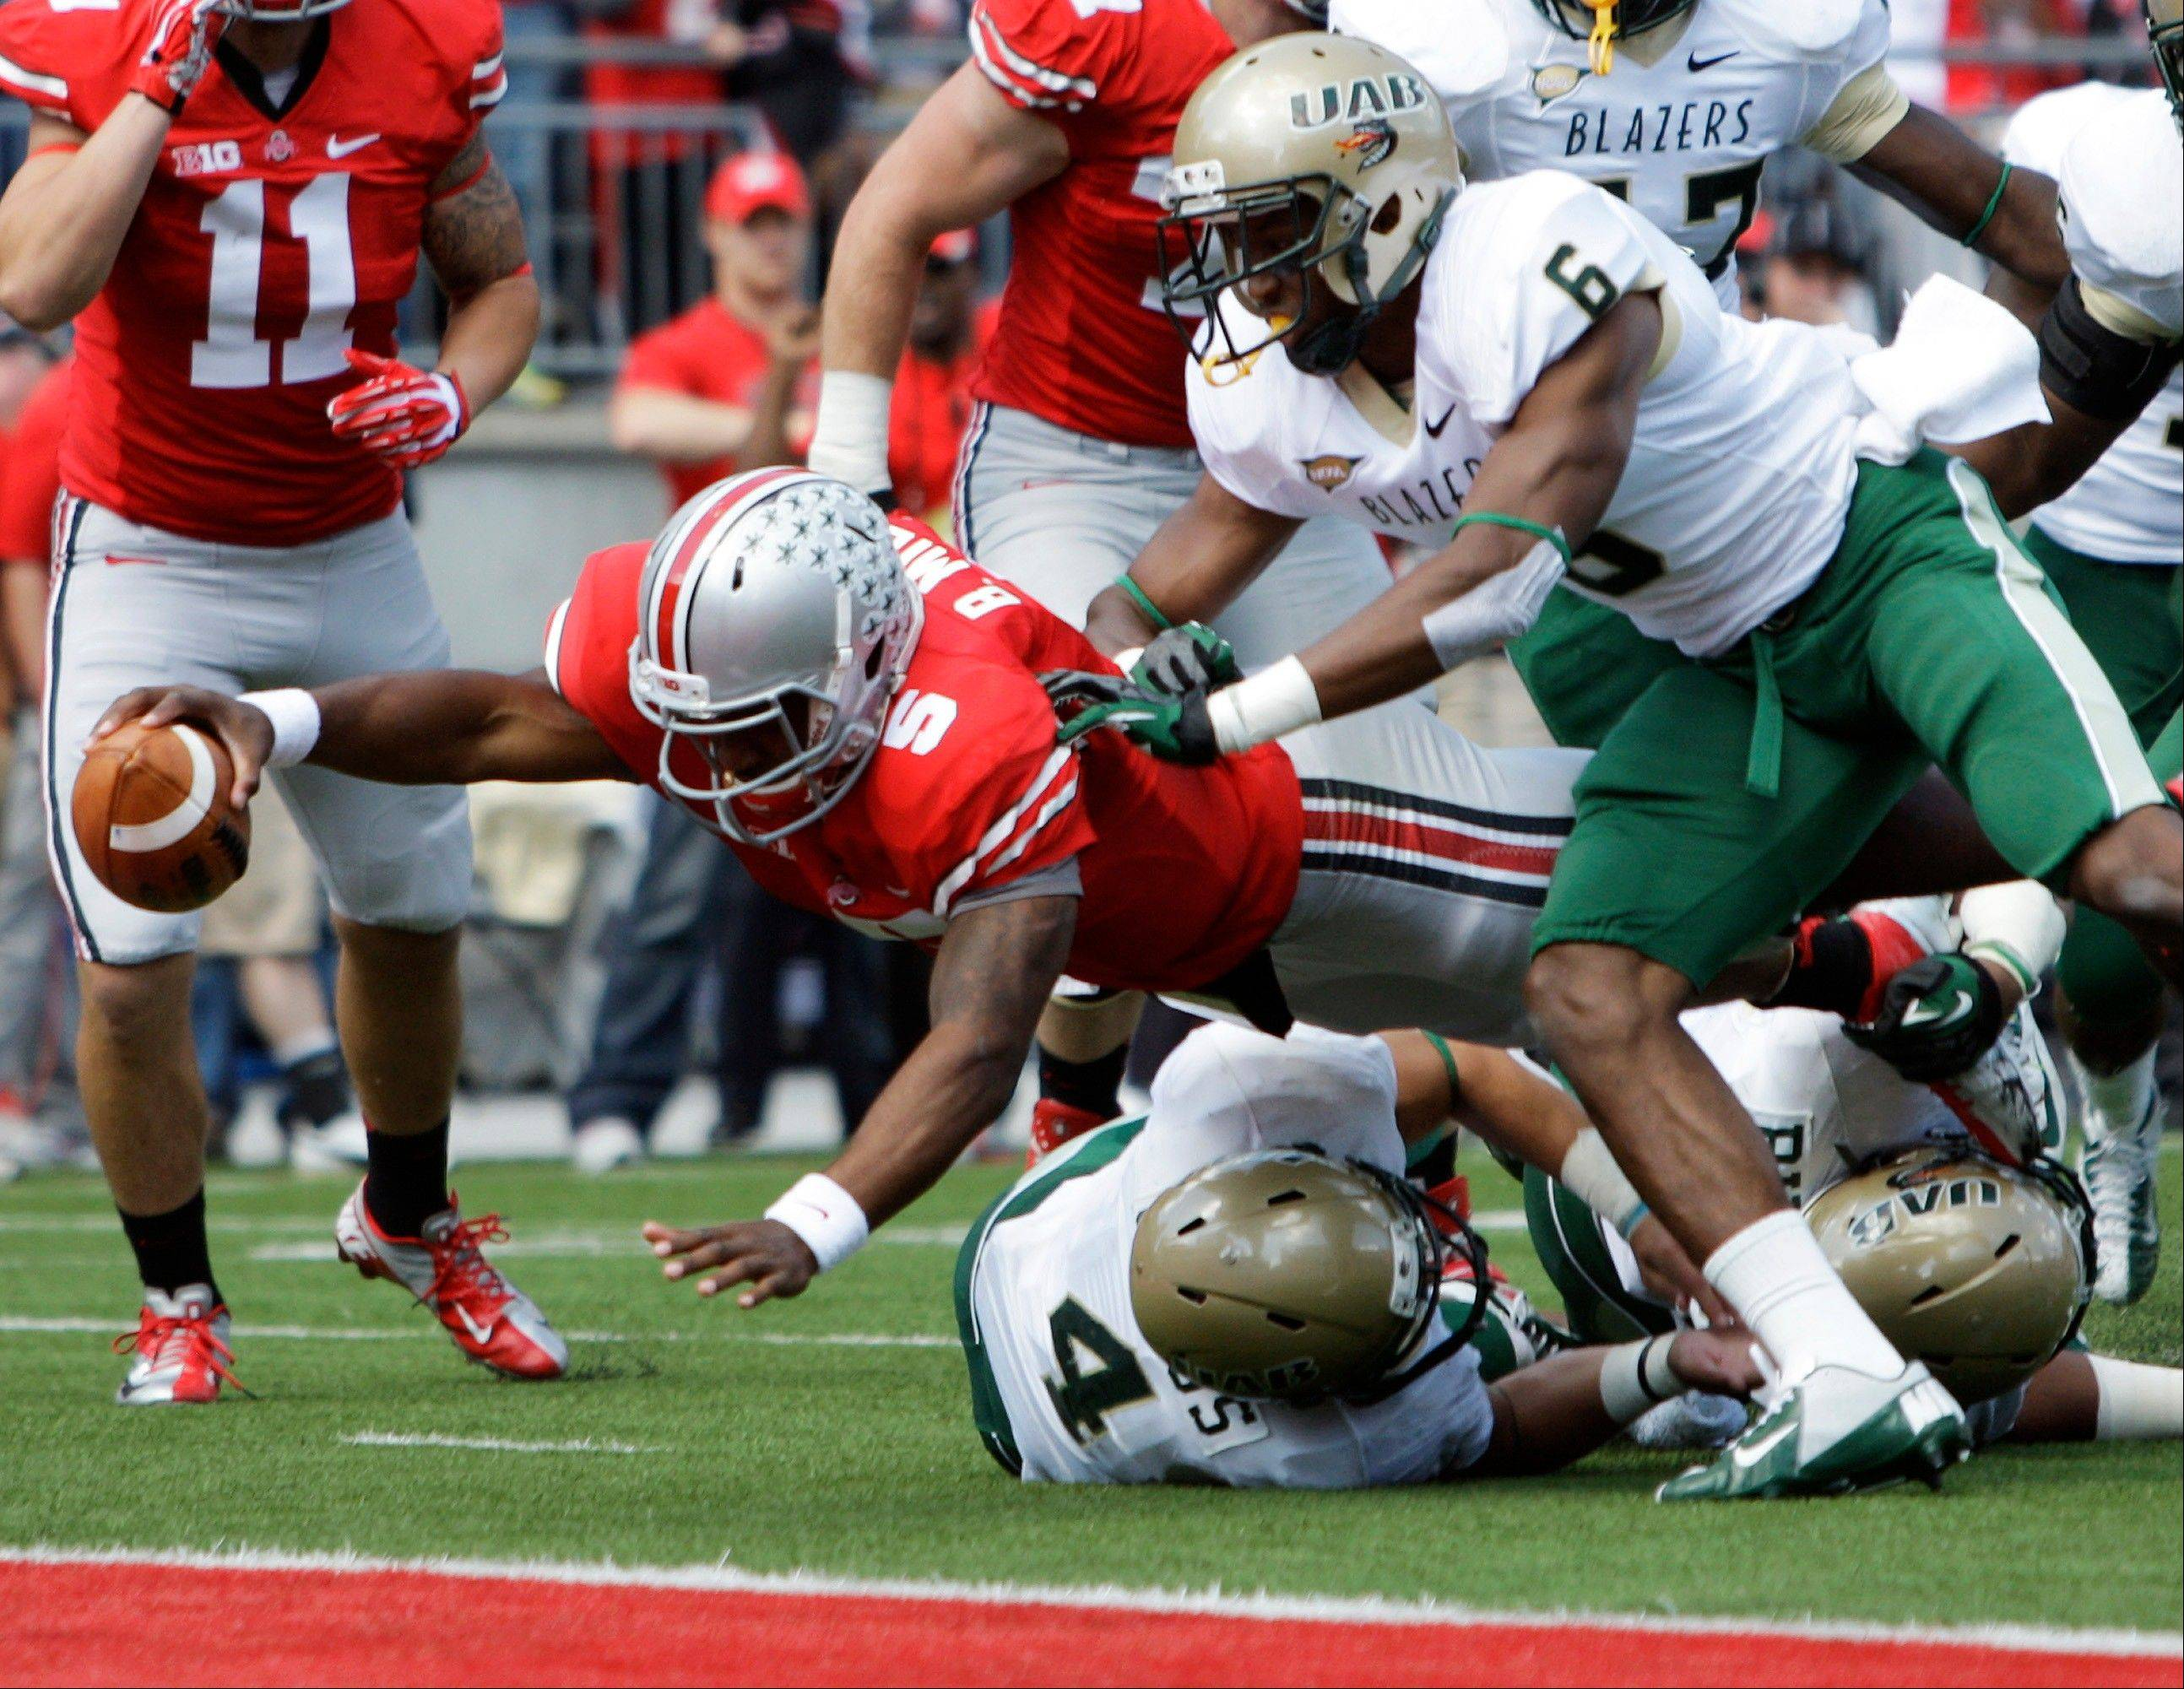 Ohio State's Braxton Miller, left, scores a touchdown against Alabama-Birmingham during the second quarter Saturday in Columbus, Ohio.